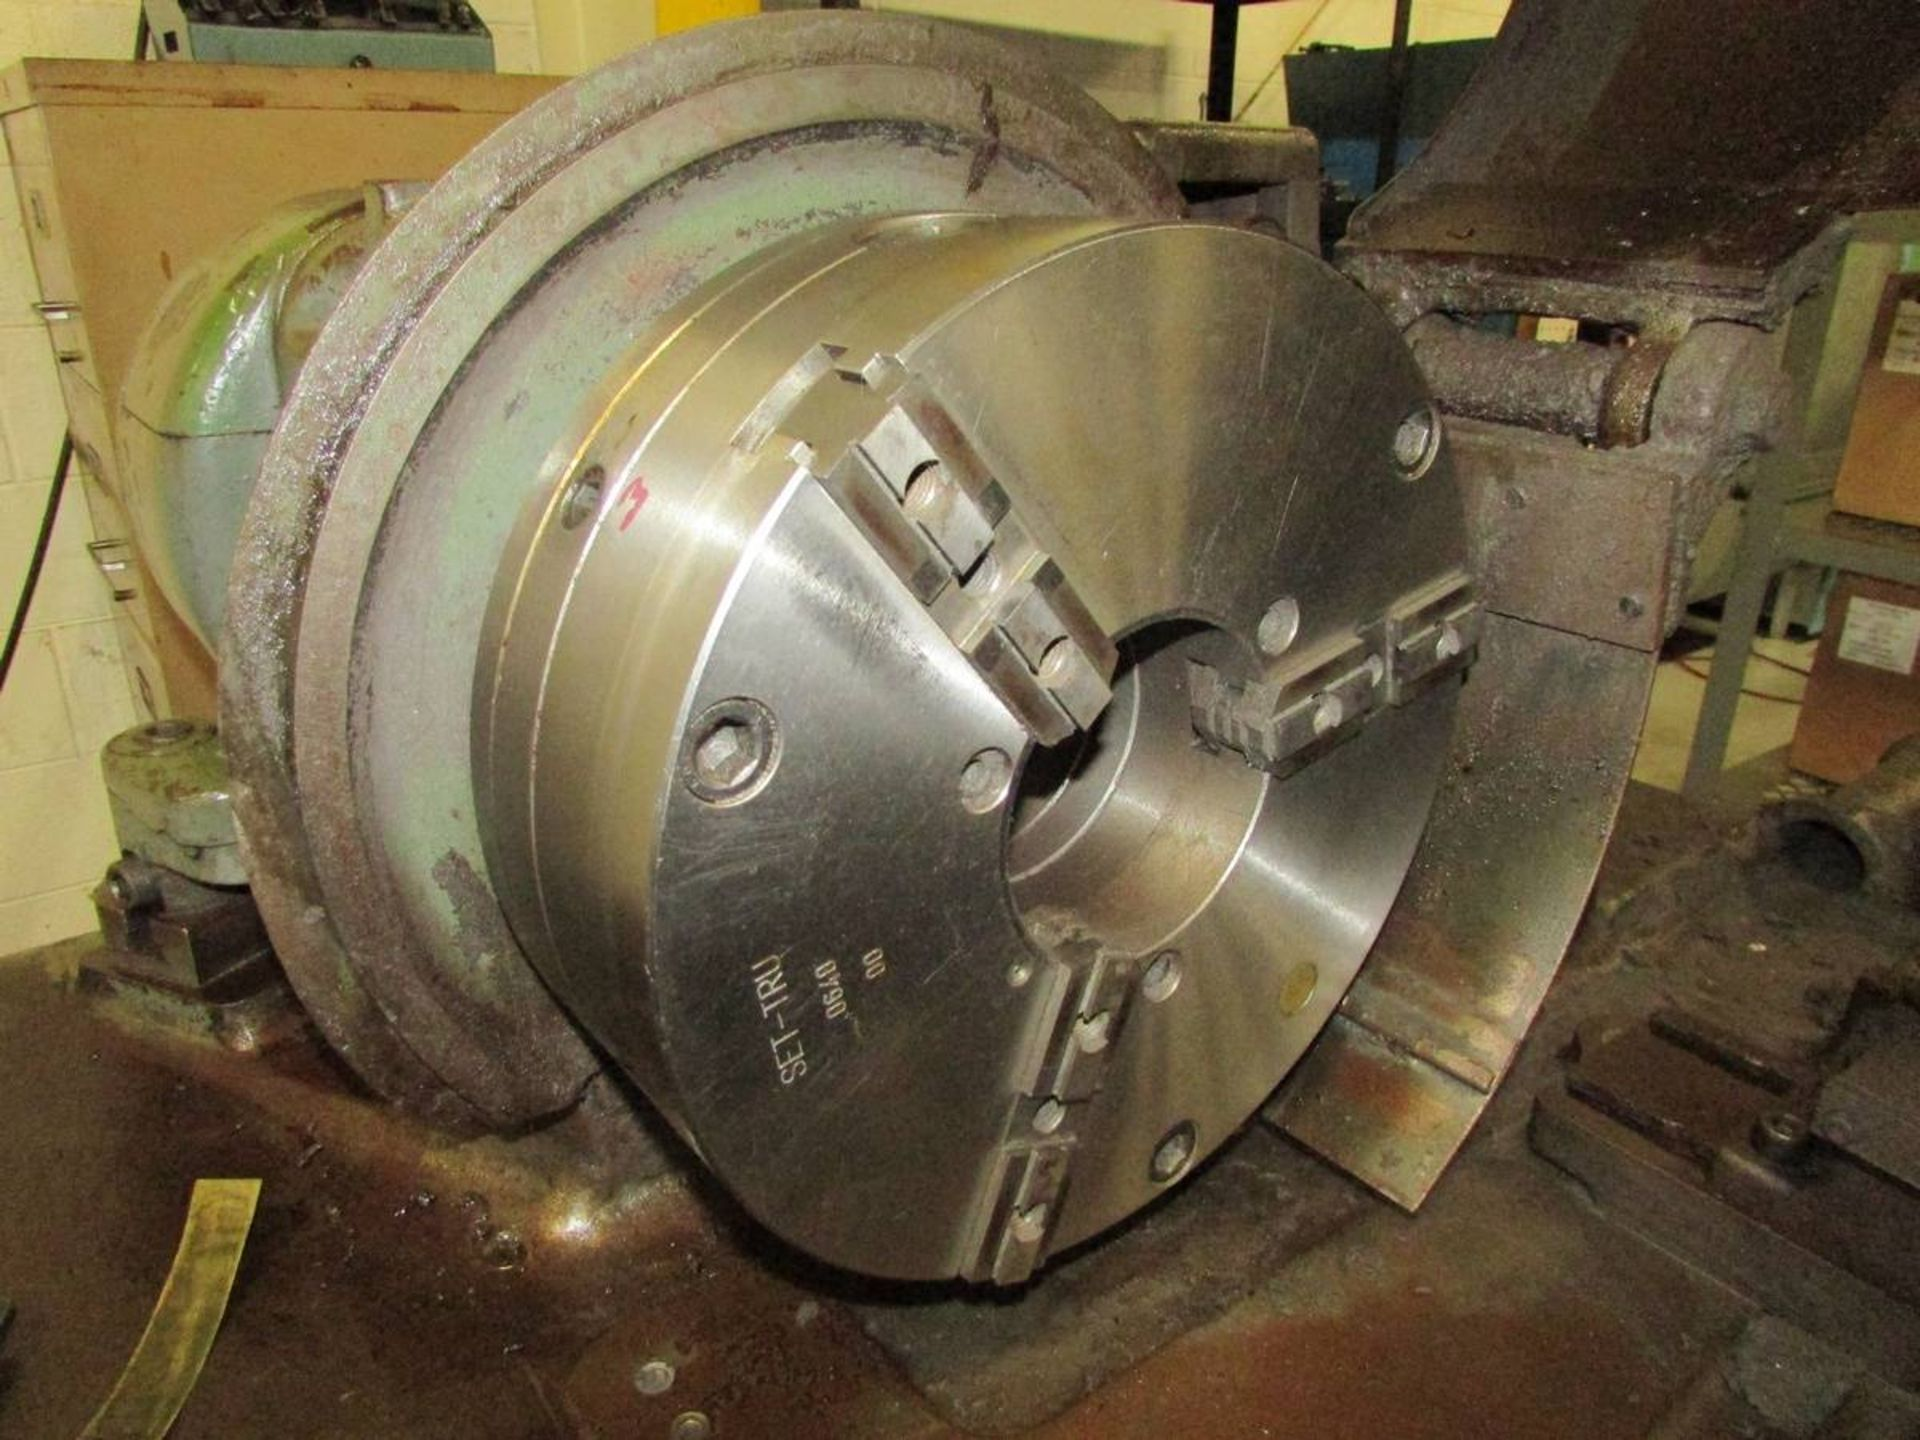 1981 Bryant 1116 ID Cylindrical Grinder - Image 4 of 20